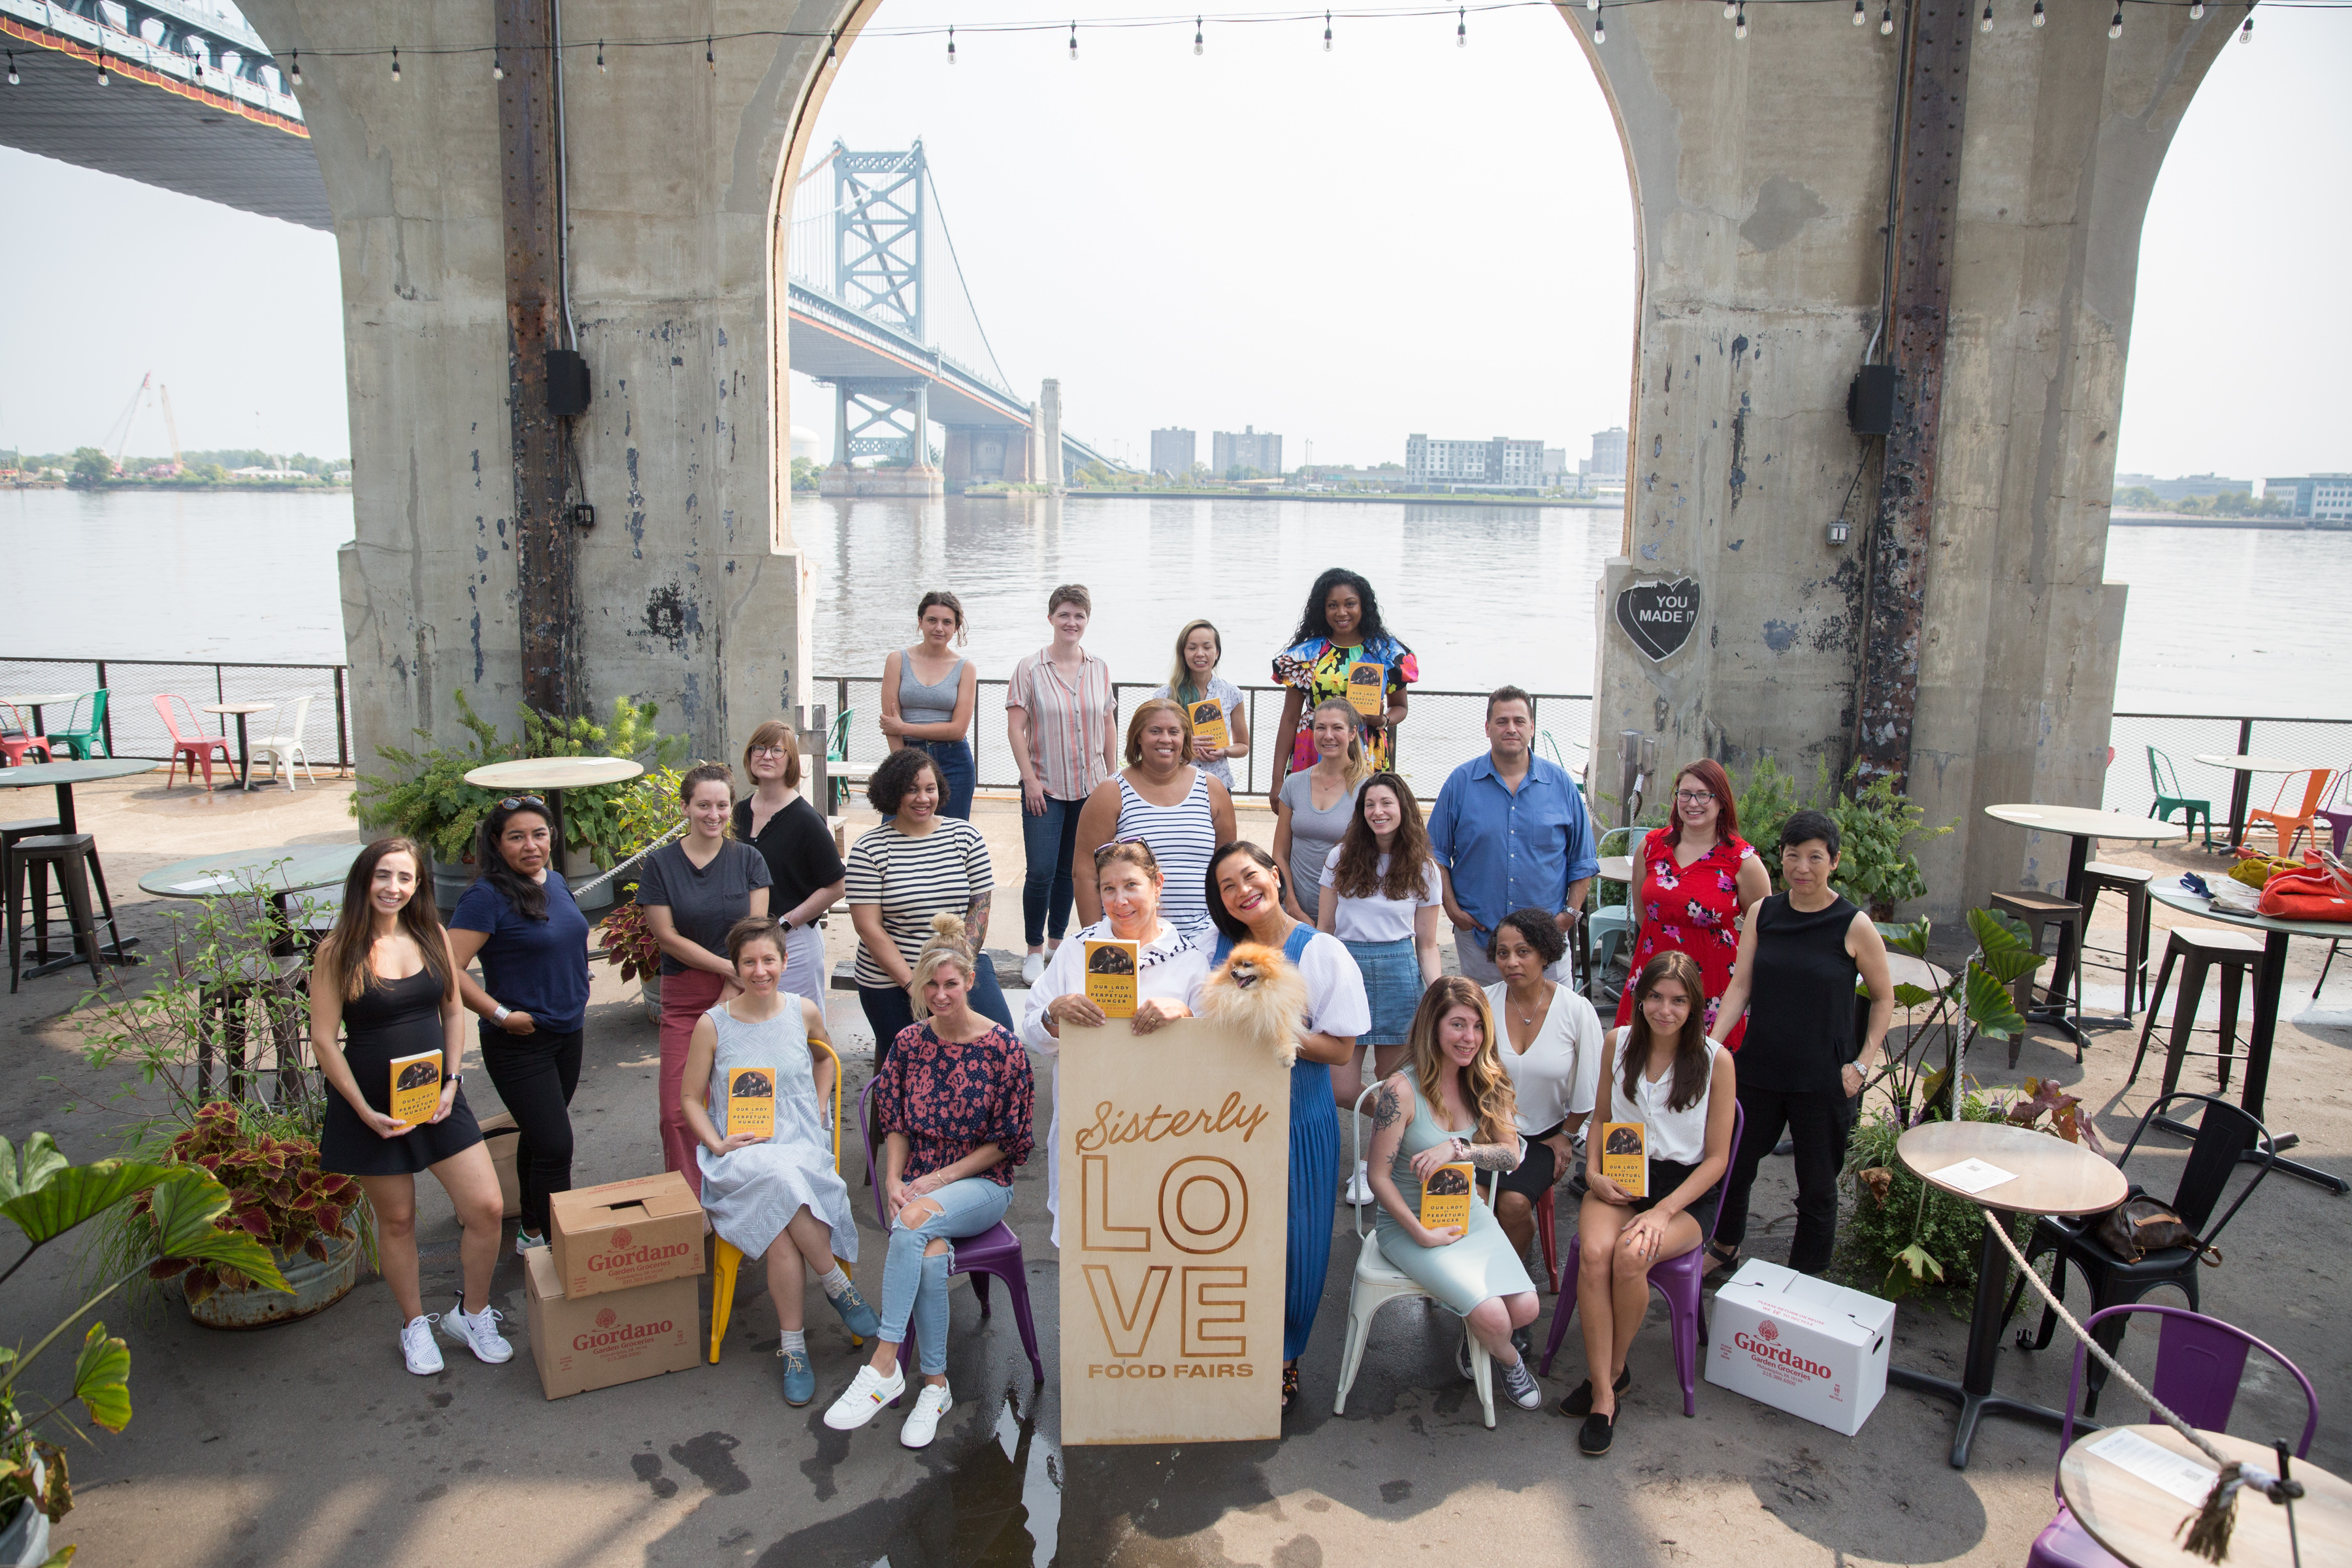 a group of women gather on a pier in front of a sign for Sisterly Love Food Fair